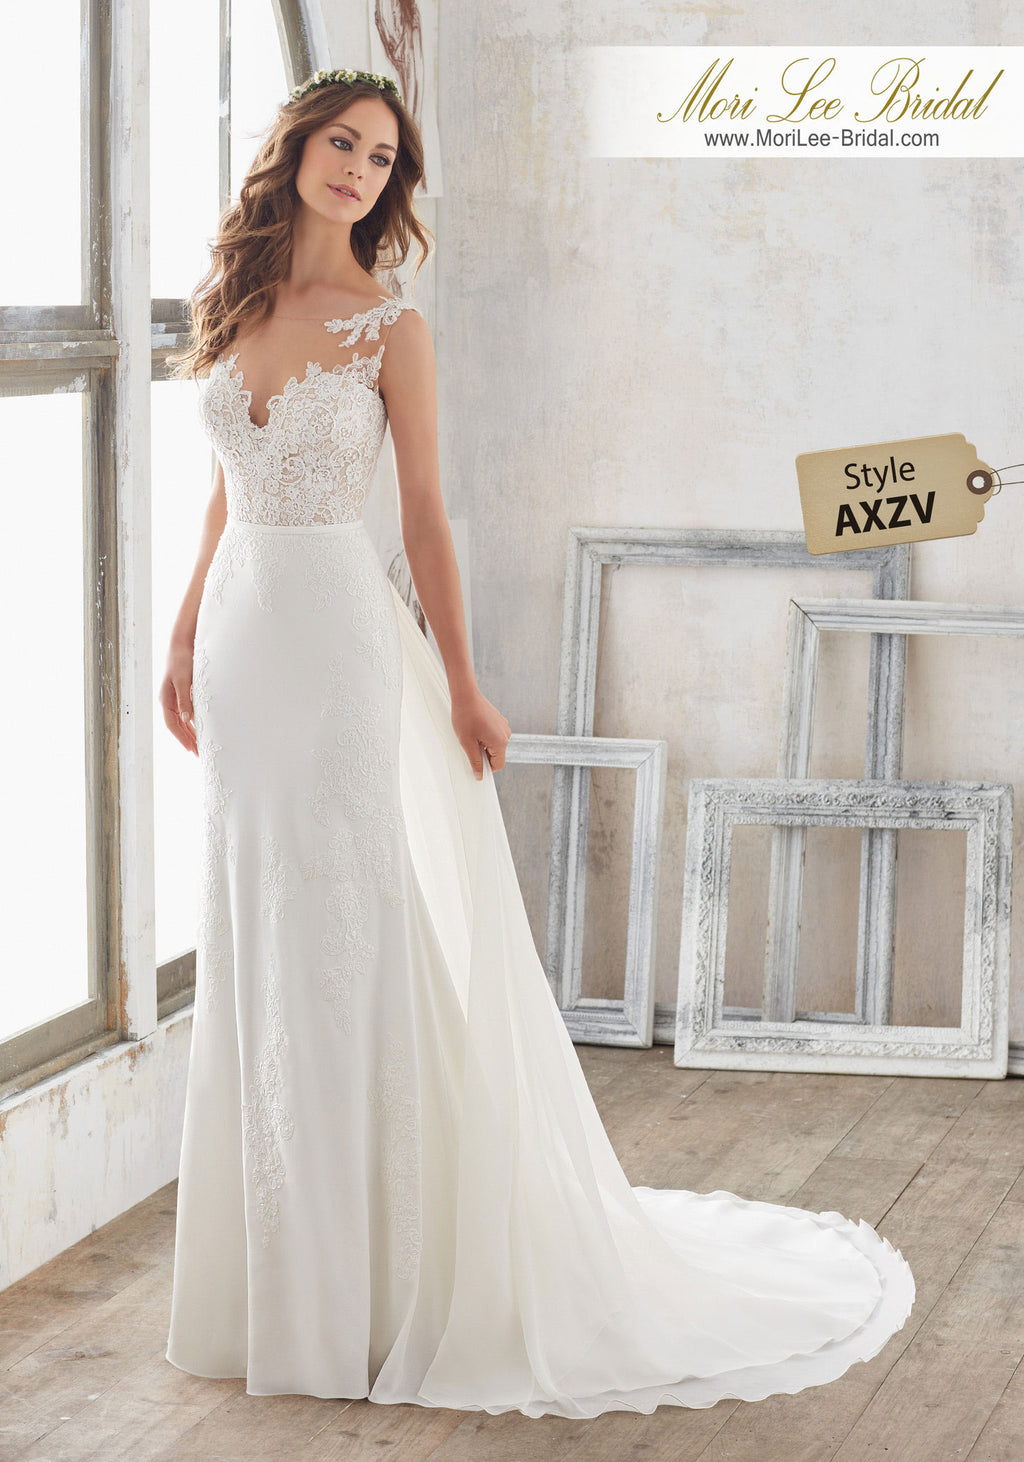 AXZV - Mori Lee Bridal